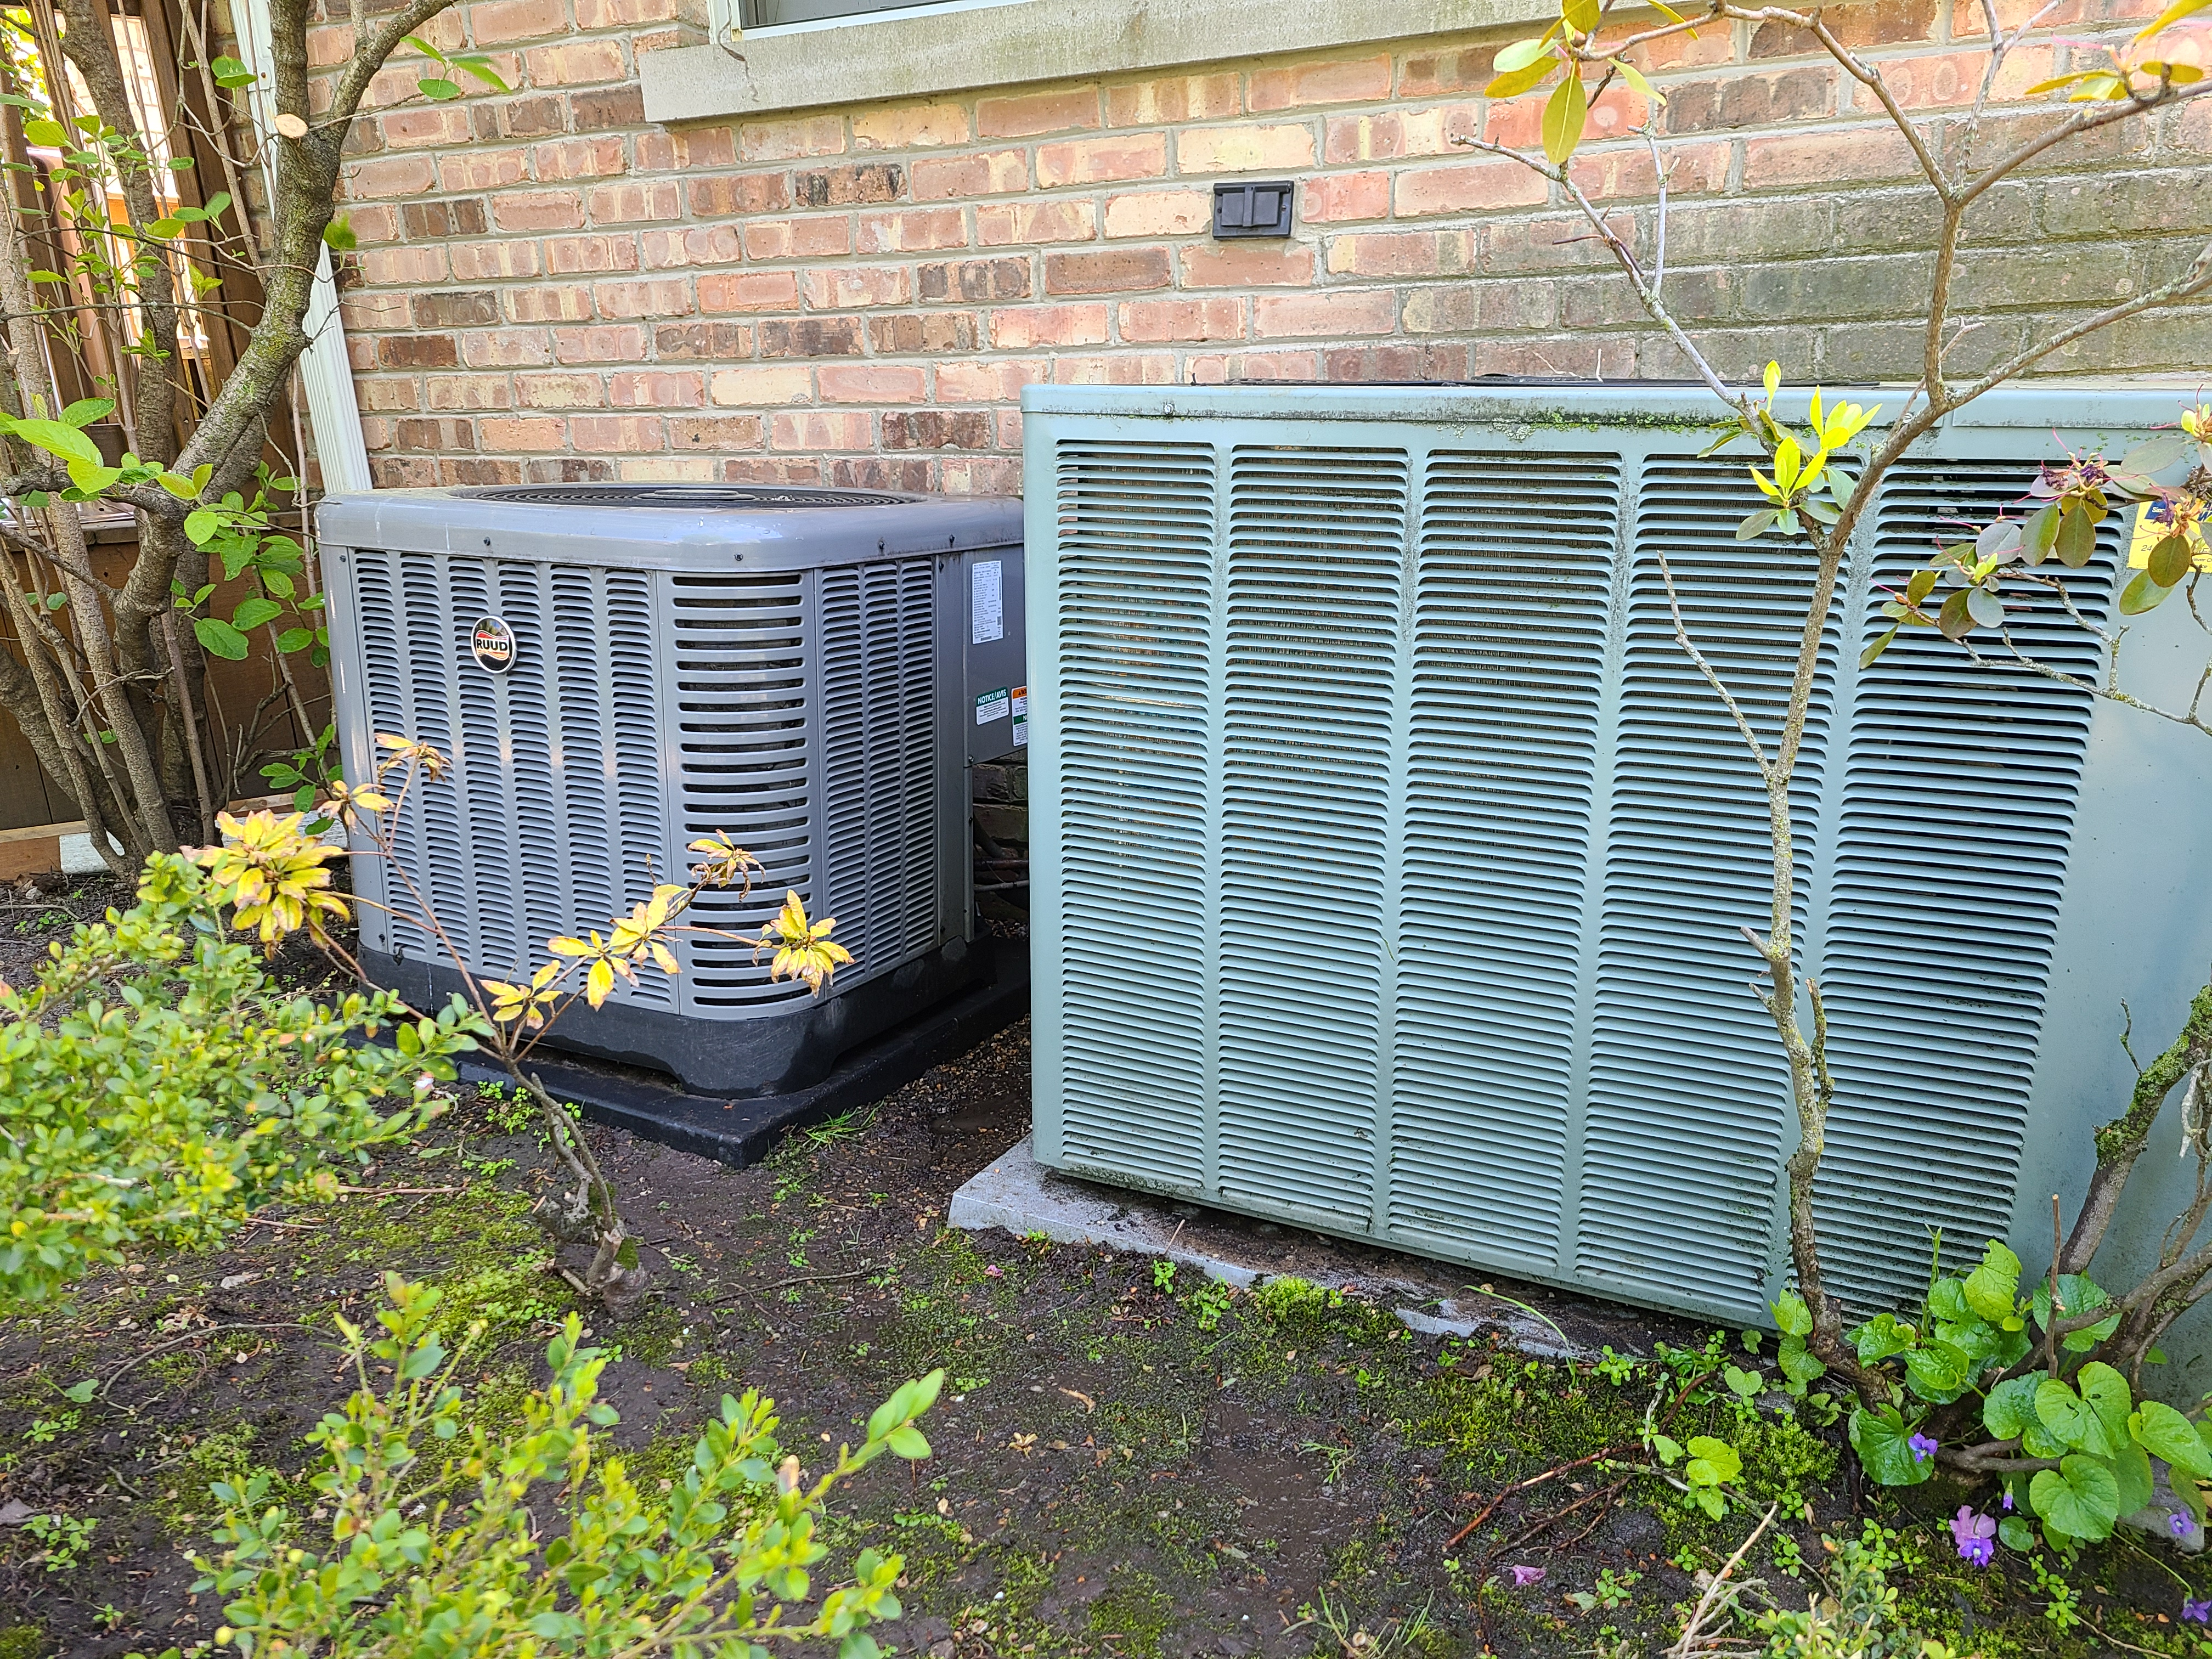 Two ruud condensers cleaned after Cts.